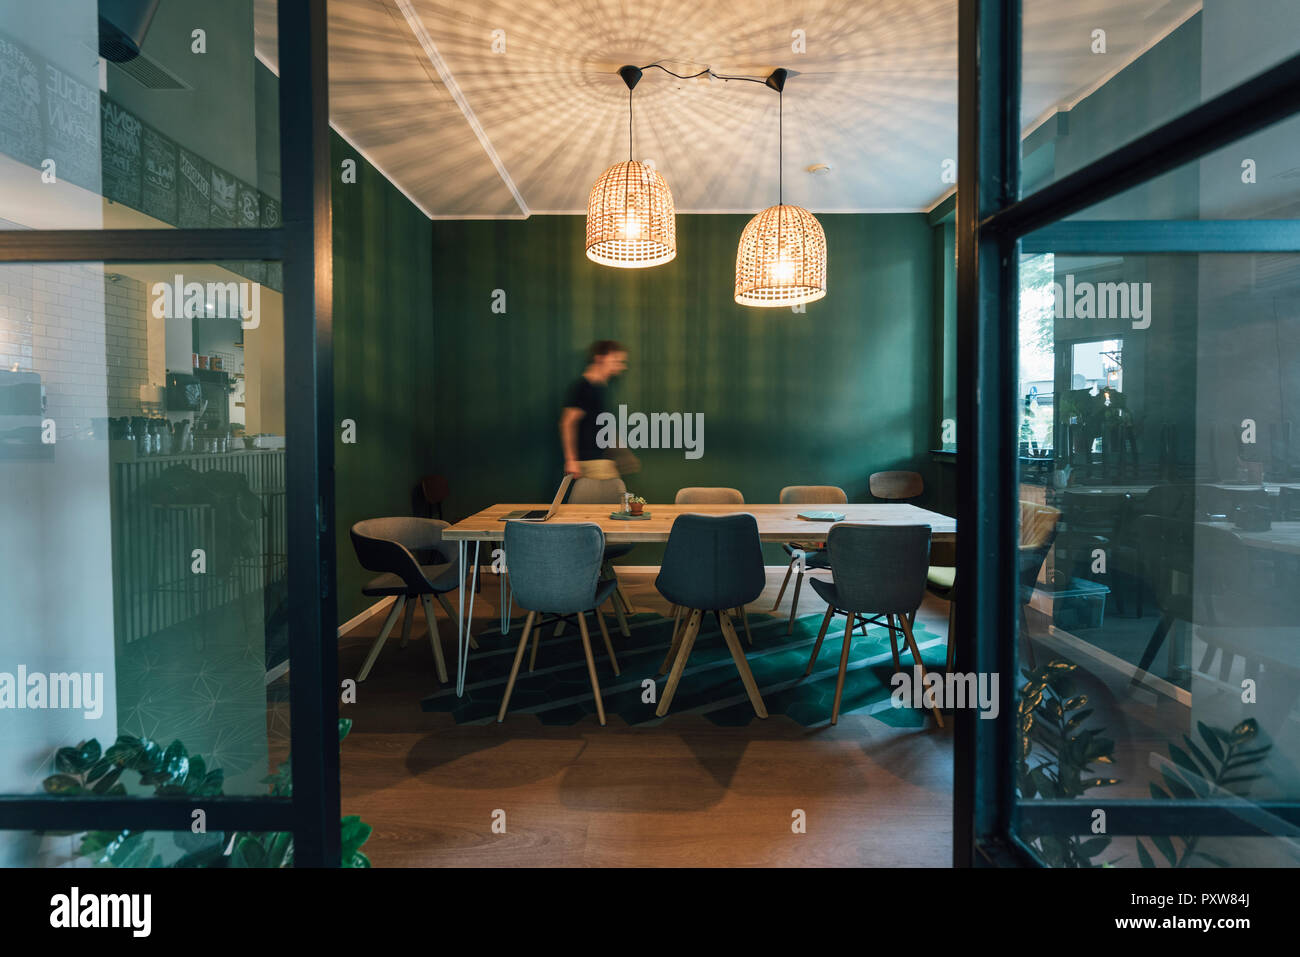 Man walking alone in office of his start up company, working long hours - Stock Image